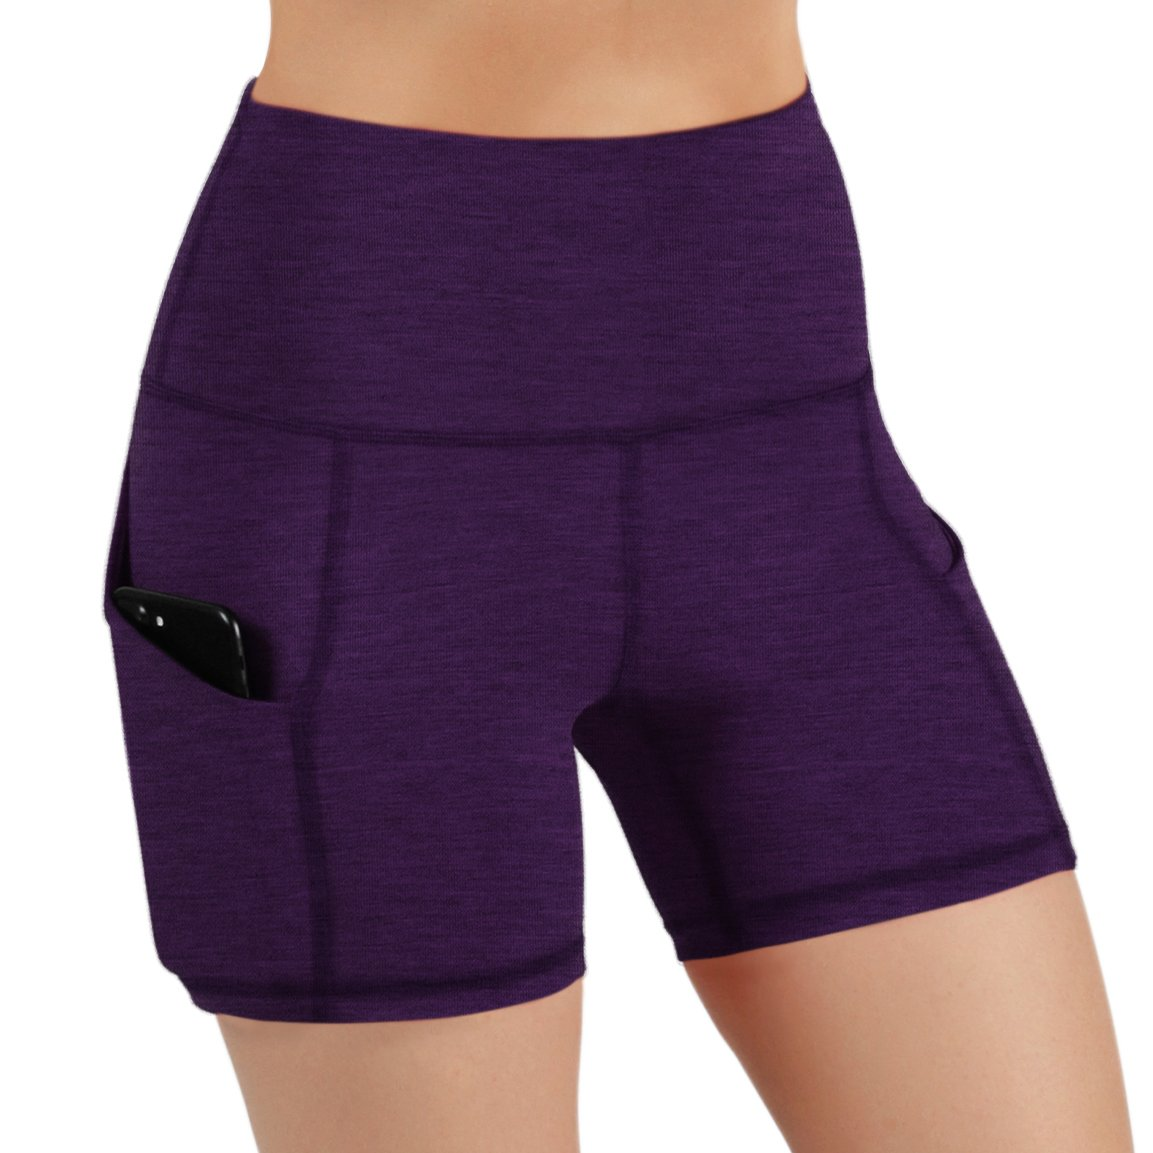 ODODOS High Waist Out Pocket Yoga Short Tummy Control Workout Running Athletic Non See-Through Yoga Shorts,DeepPurple,Small by ODODOS